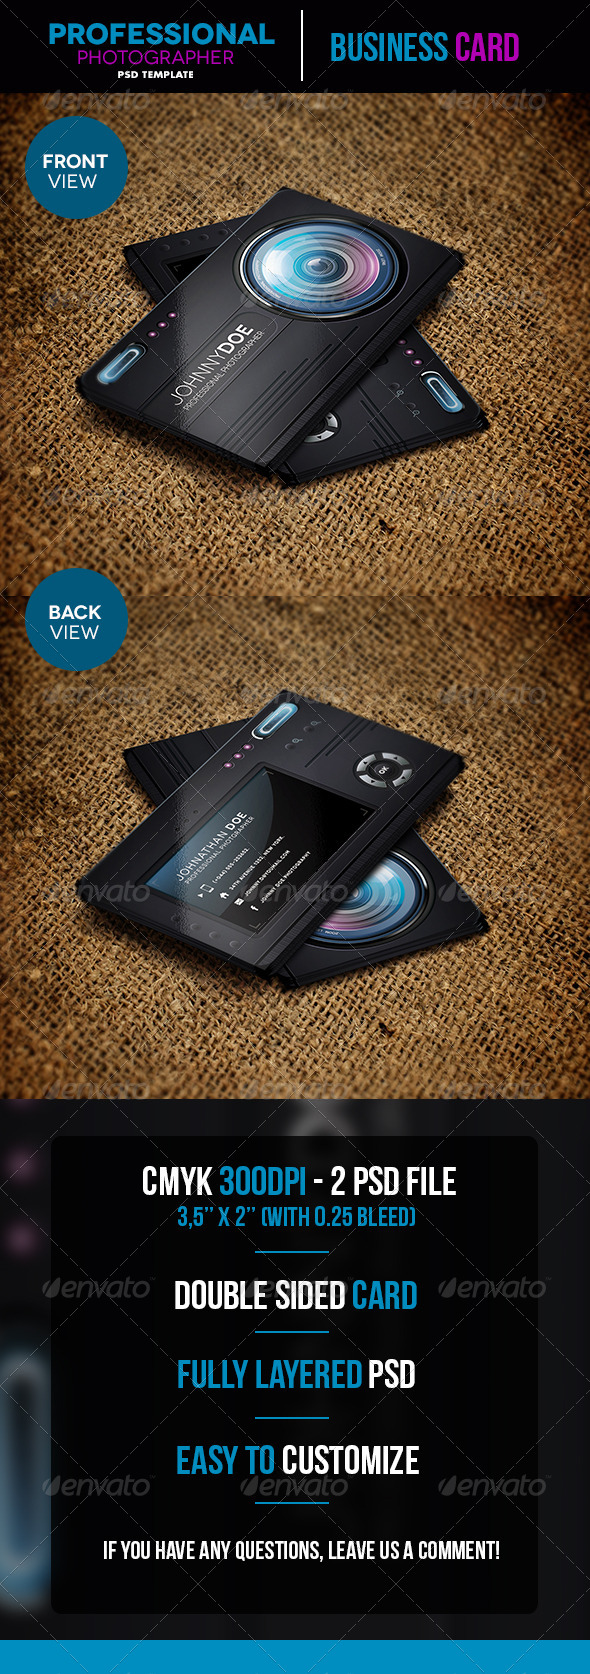 Professional Photographer Business Card - Business Cards Print Templates